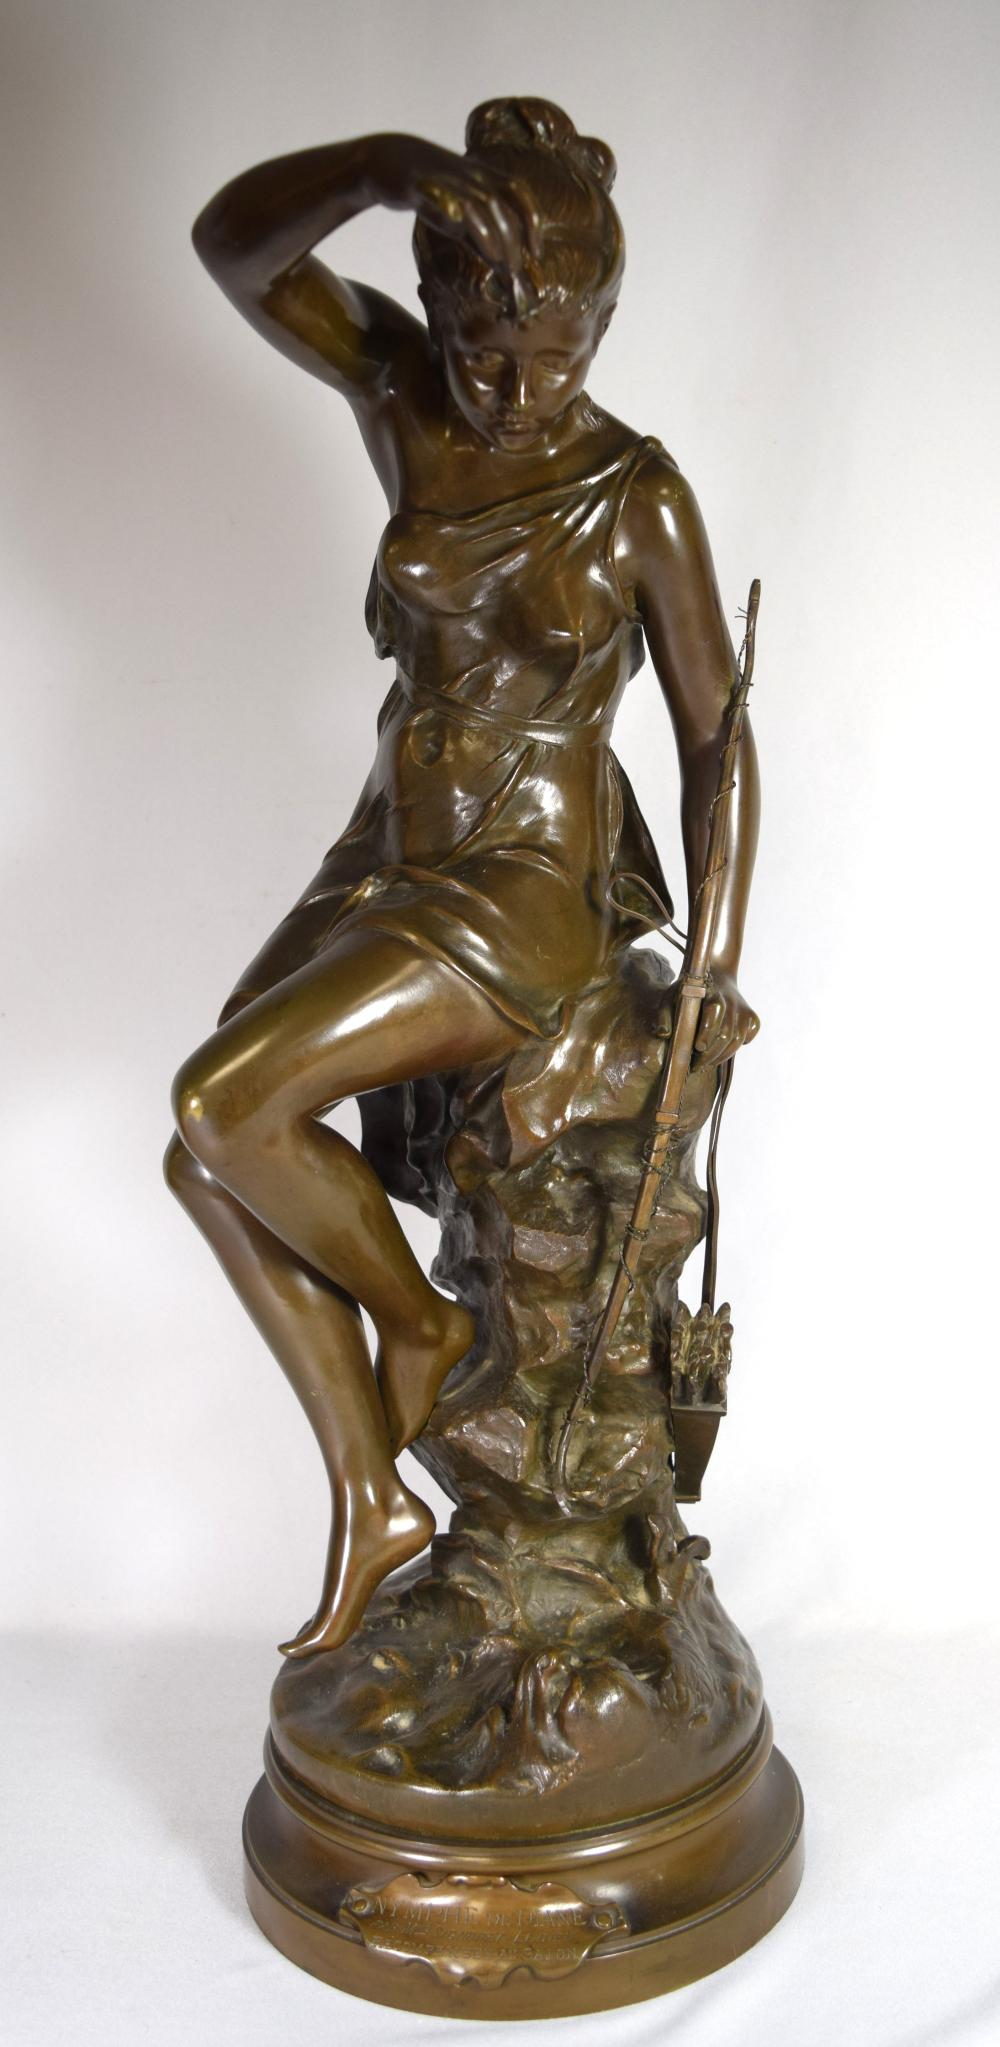 LATE 19TH C LUCIE SIGNORET-LEDIEU FRENCH BRONZE: